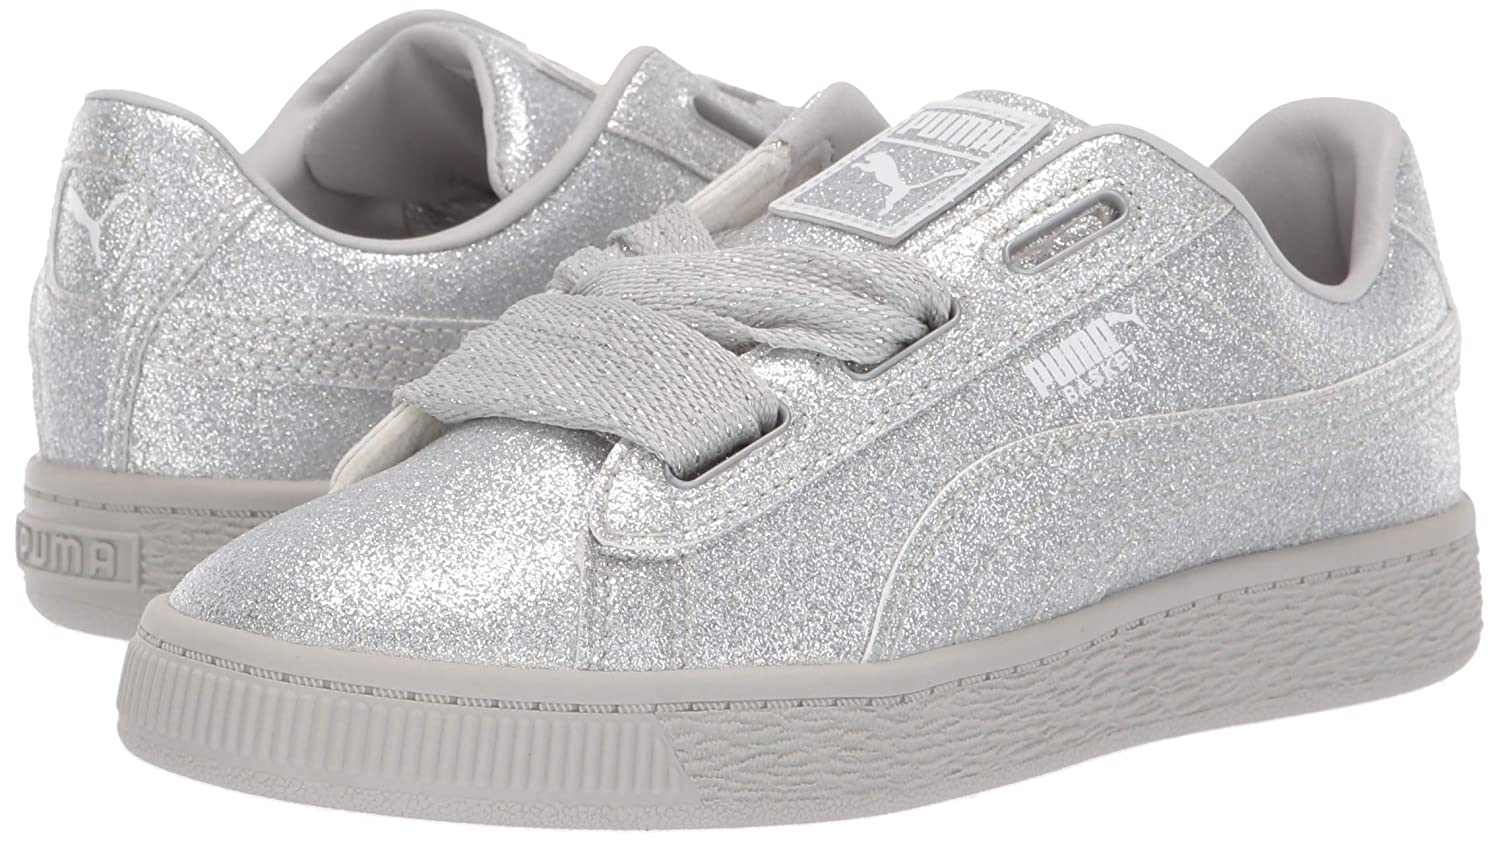 best website 85dfd b5c77 Puma Girls - Basket Heart Patent Kids: Amazon.co.uk: Shoes ...